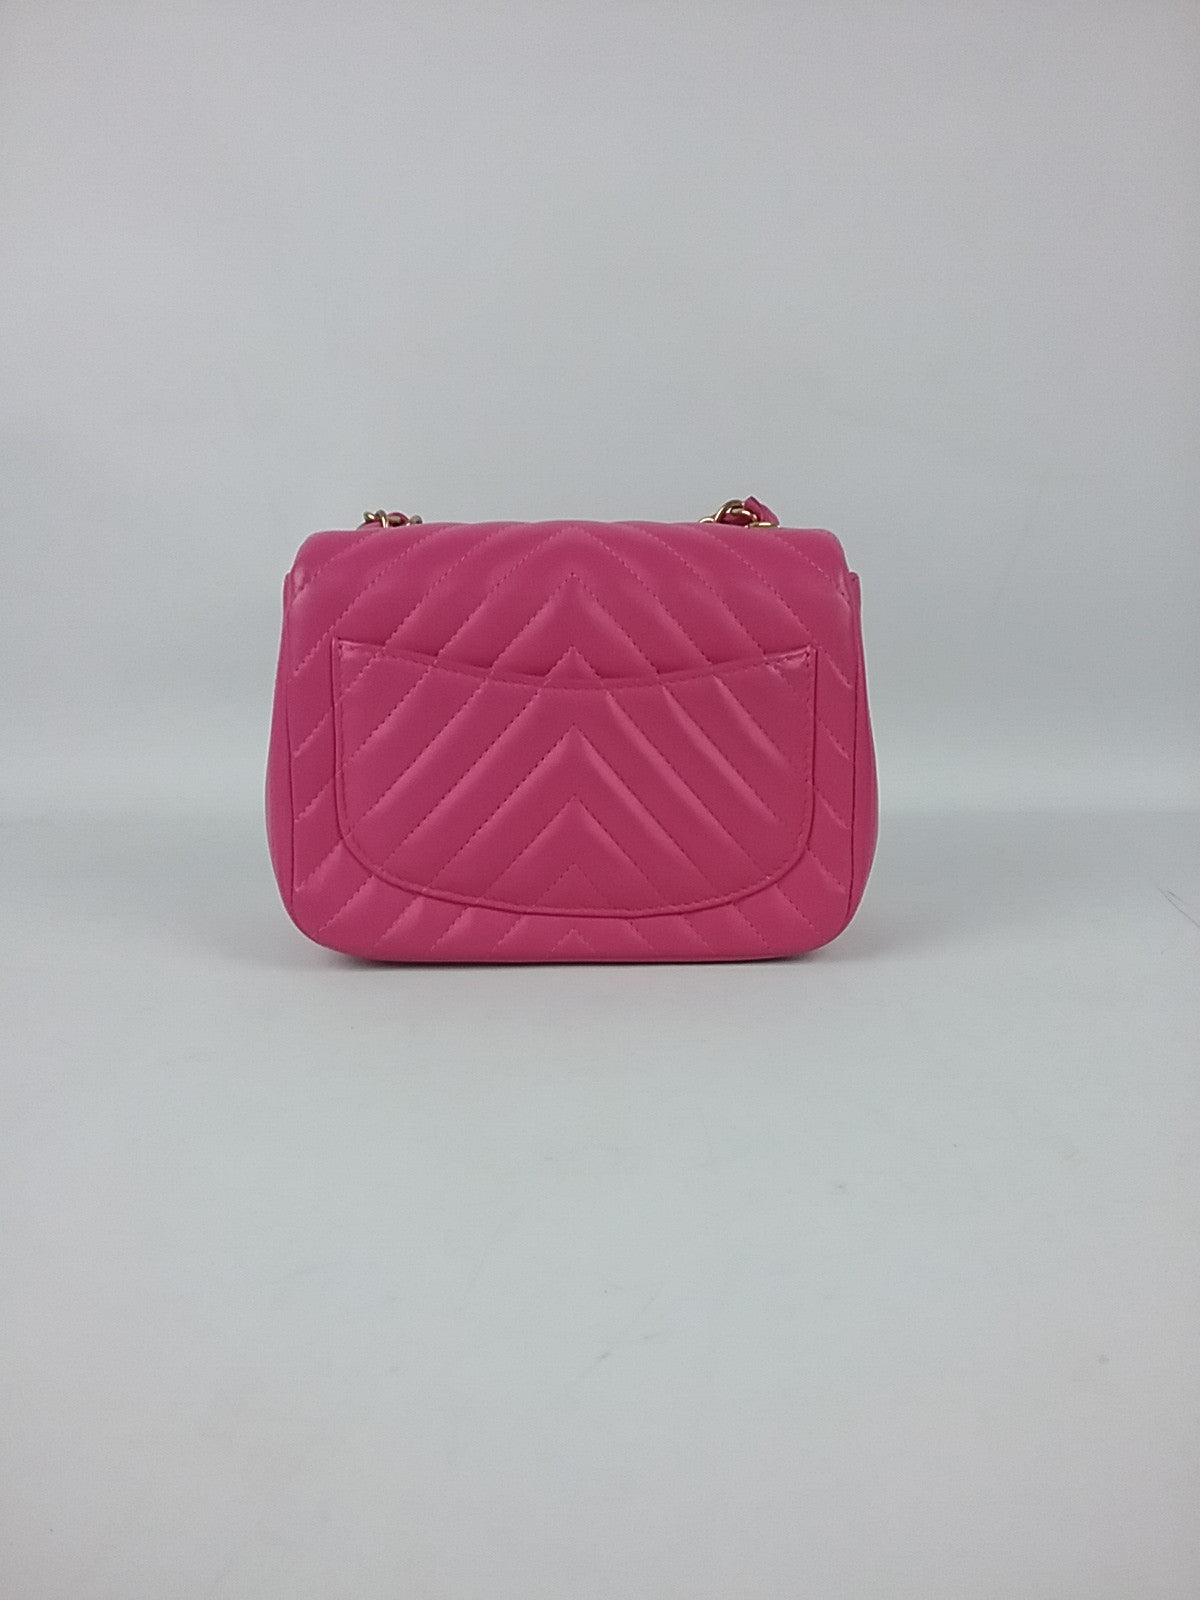 Fuschia Lambskin Chevron Square Mini Bag GHW